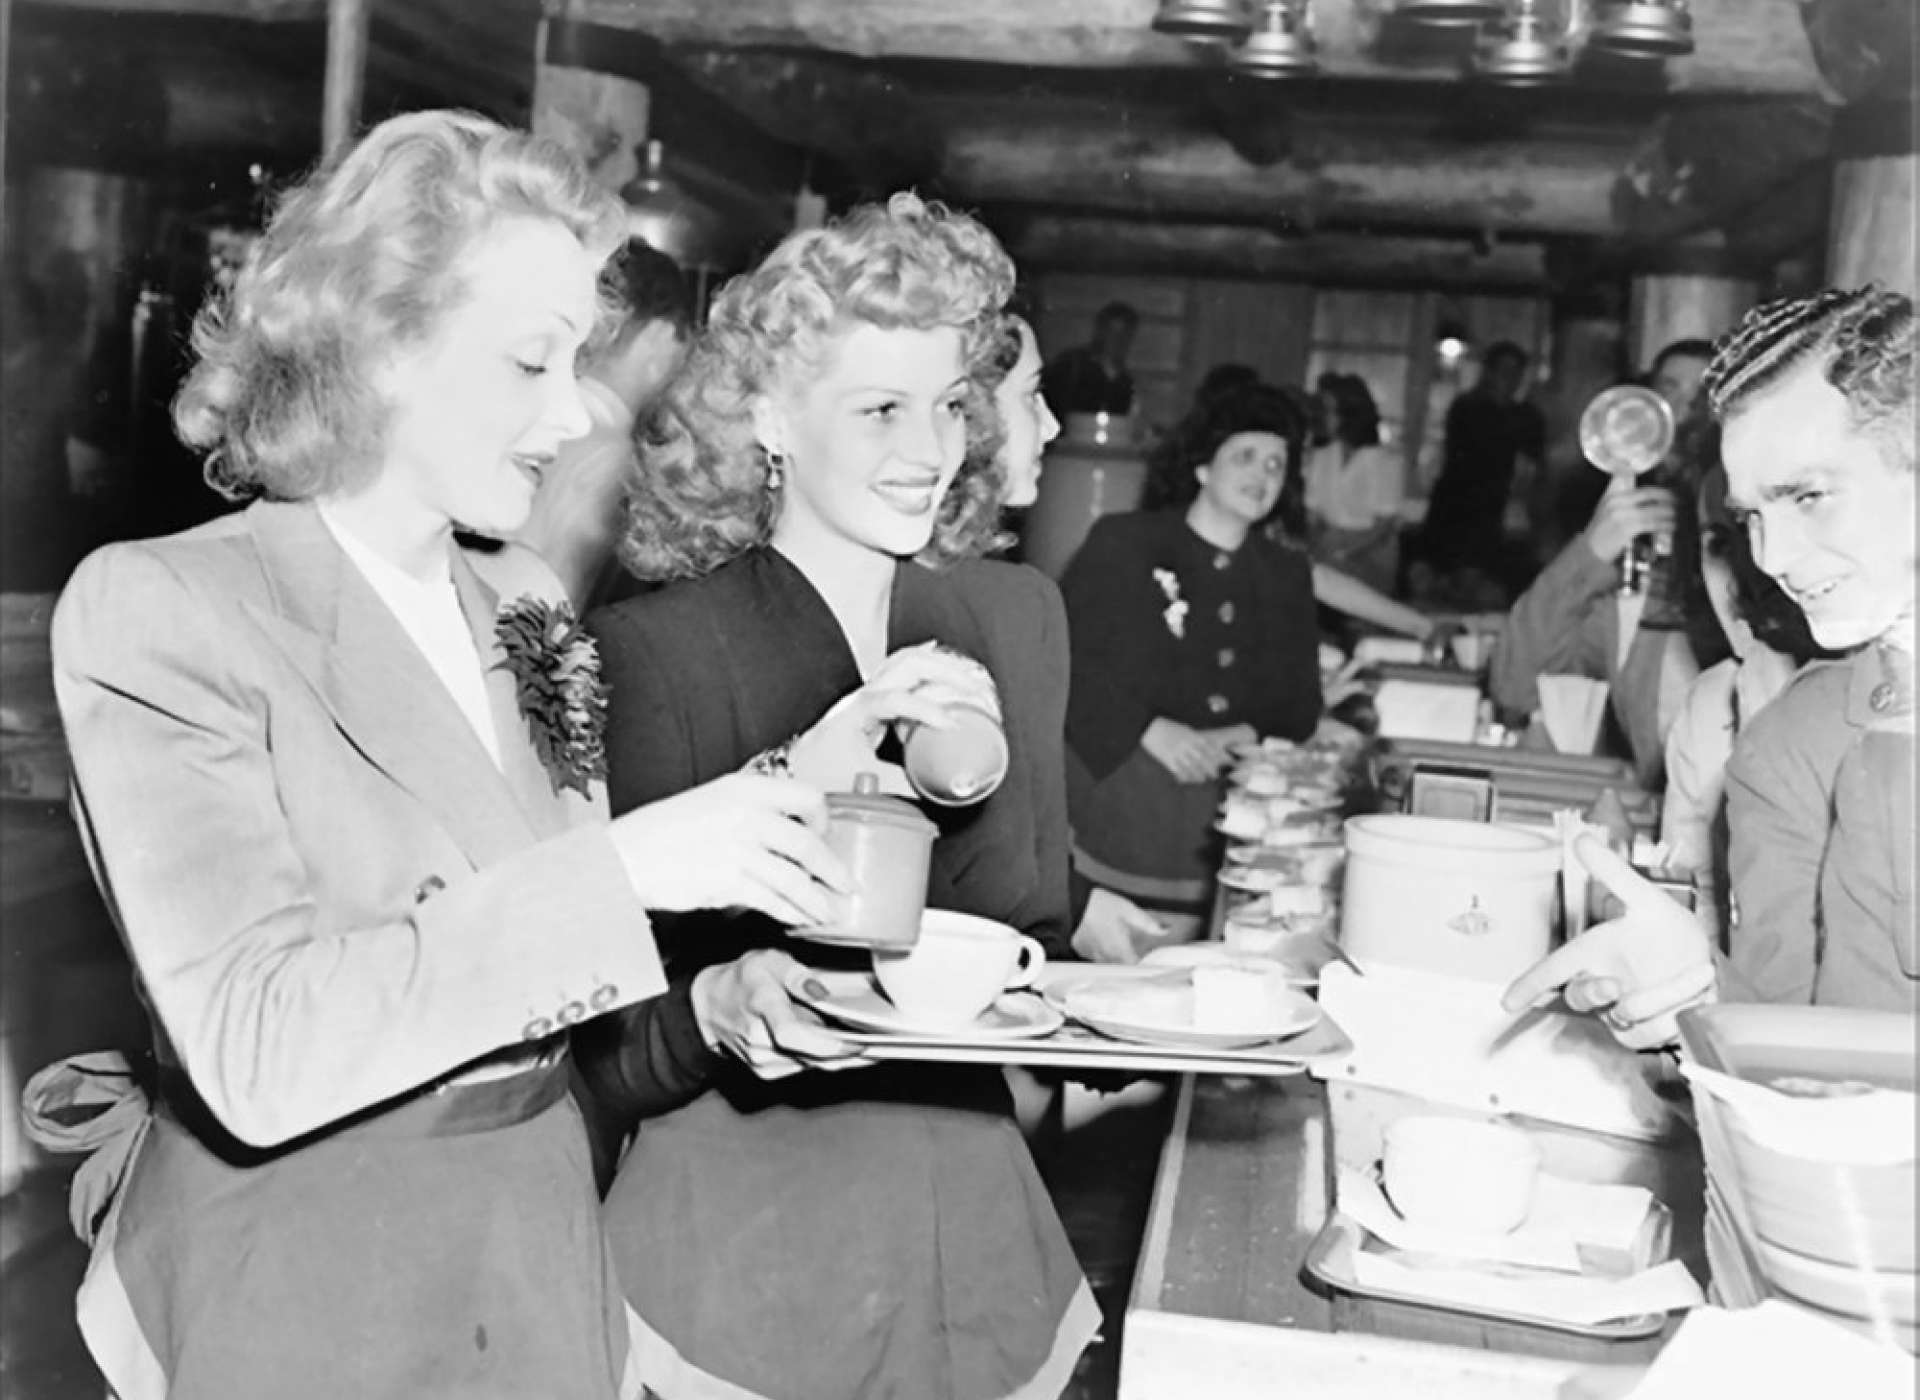 Actresses Marlene Dietrich and Rita Hayworth serve food to soldiers at the Hollywood Canteen in Hollywood, California.